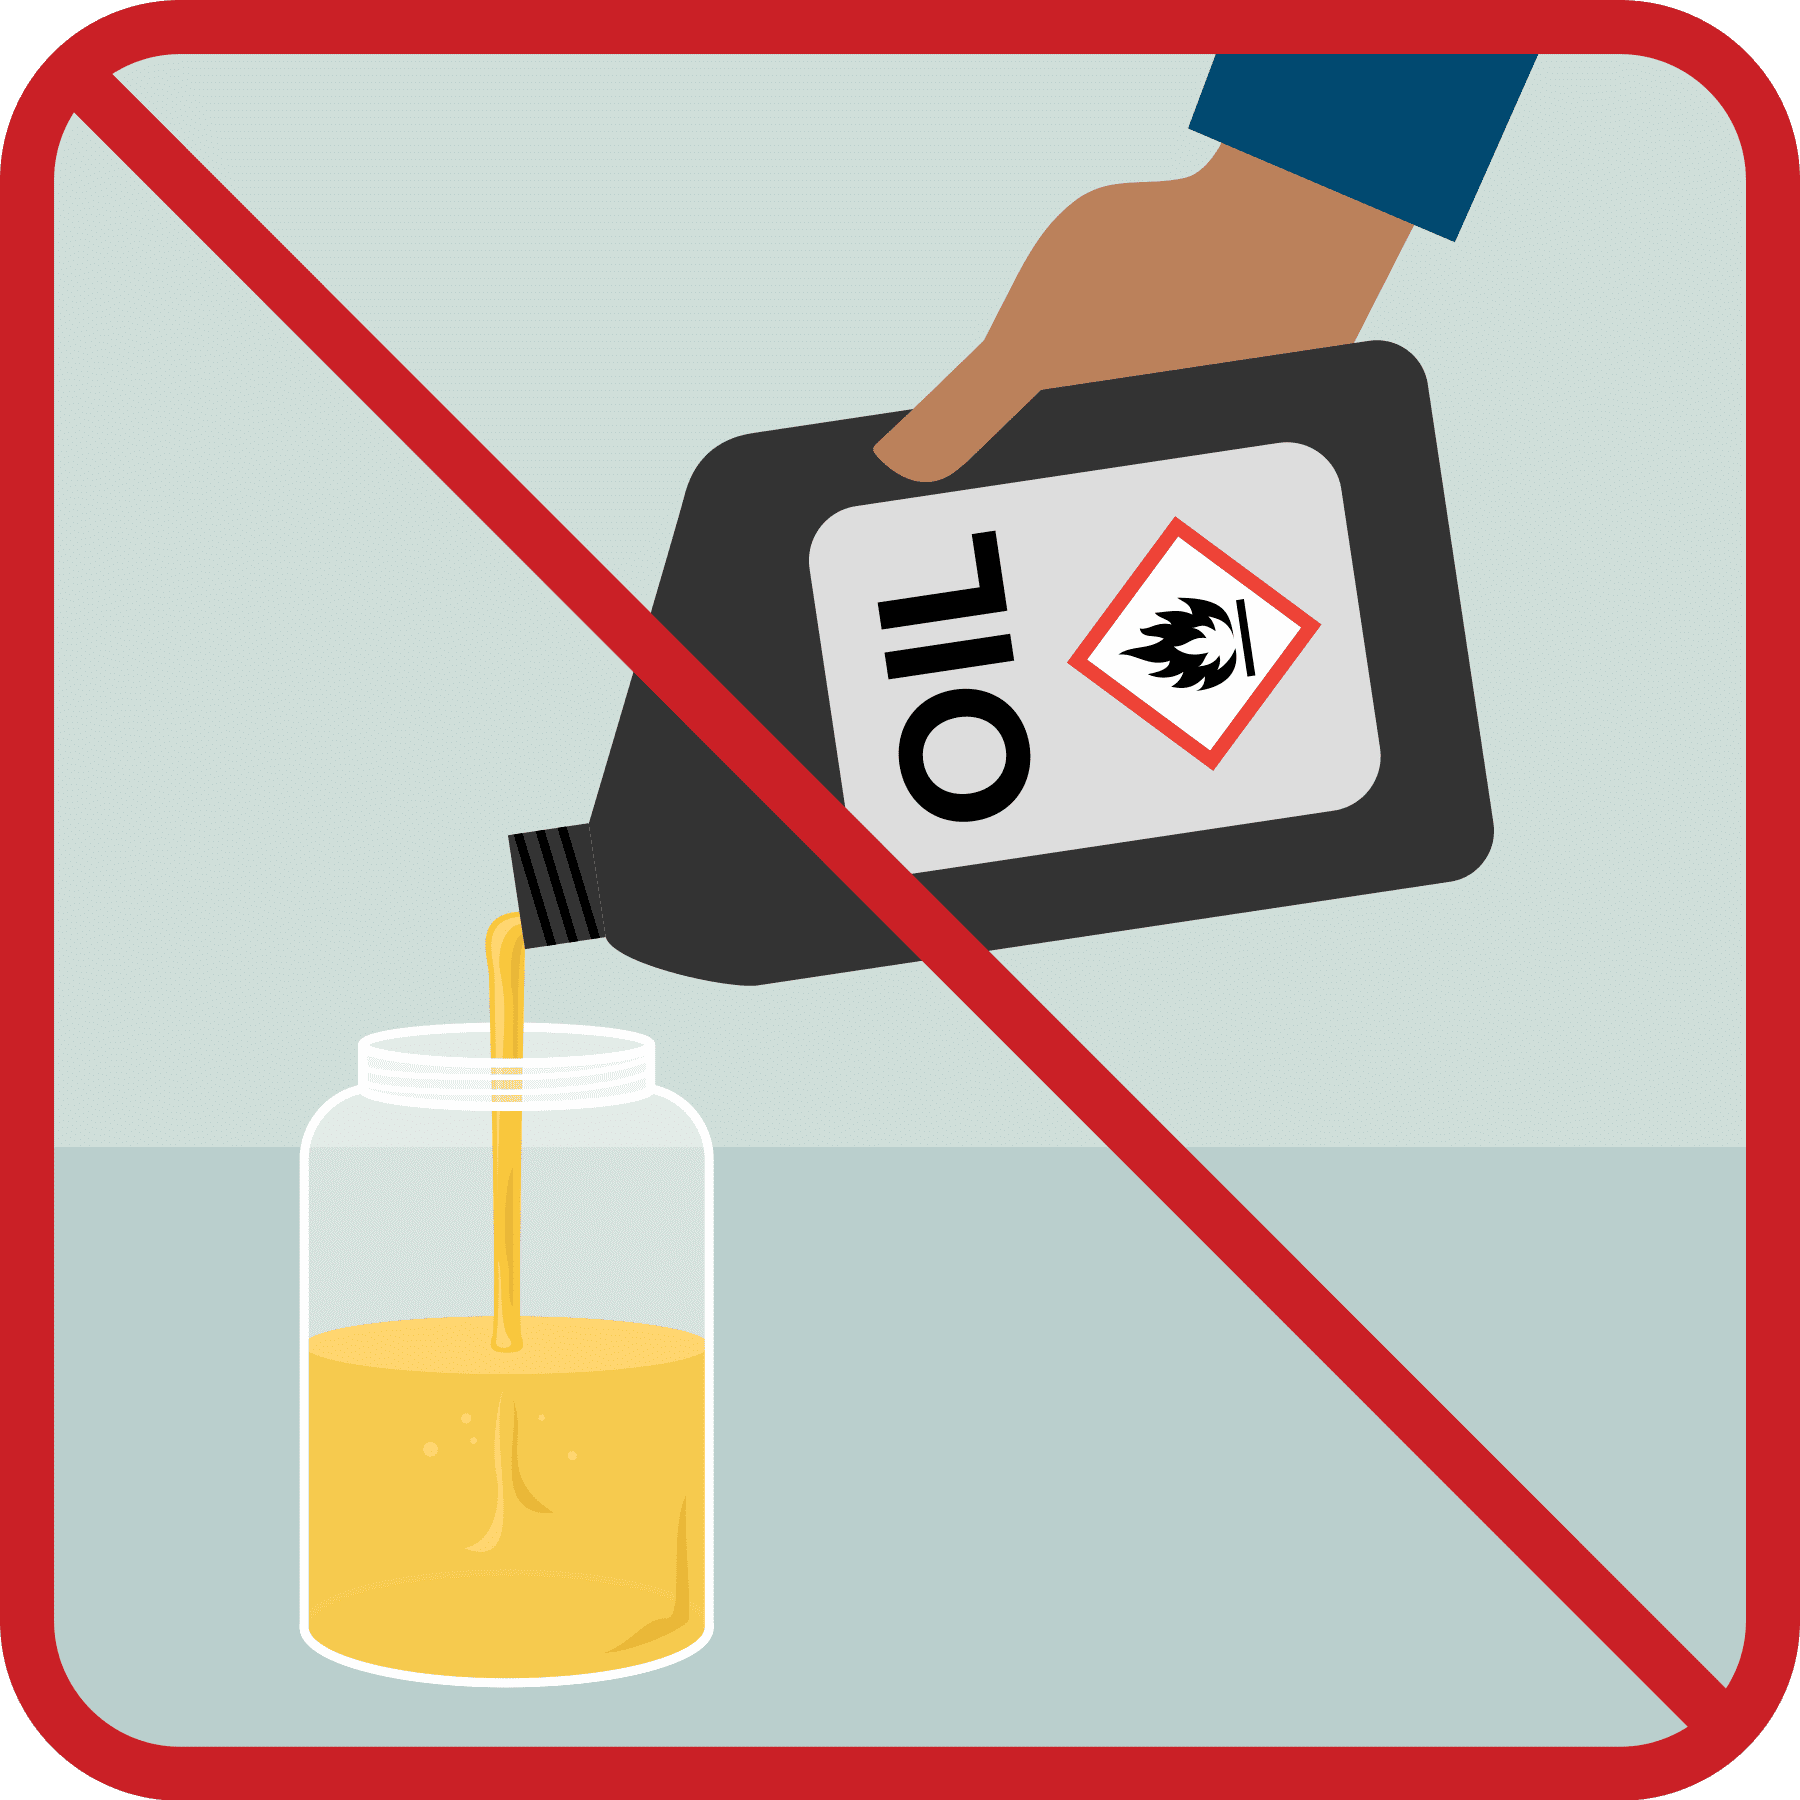 Pouring a container of oil into a glass jar with a red line across the illustration.